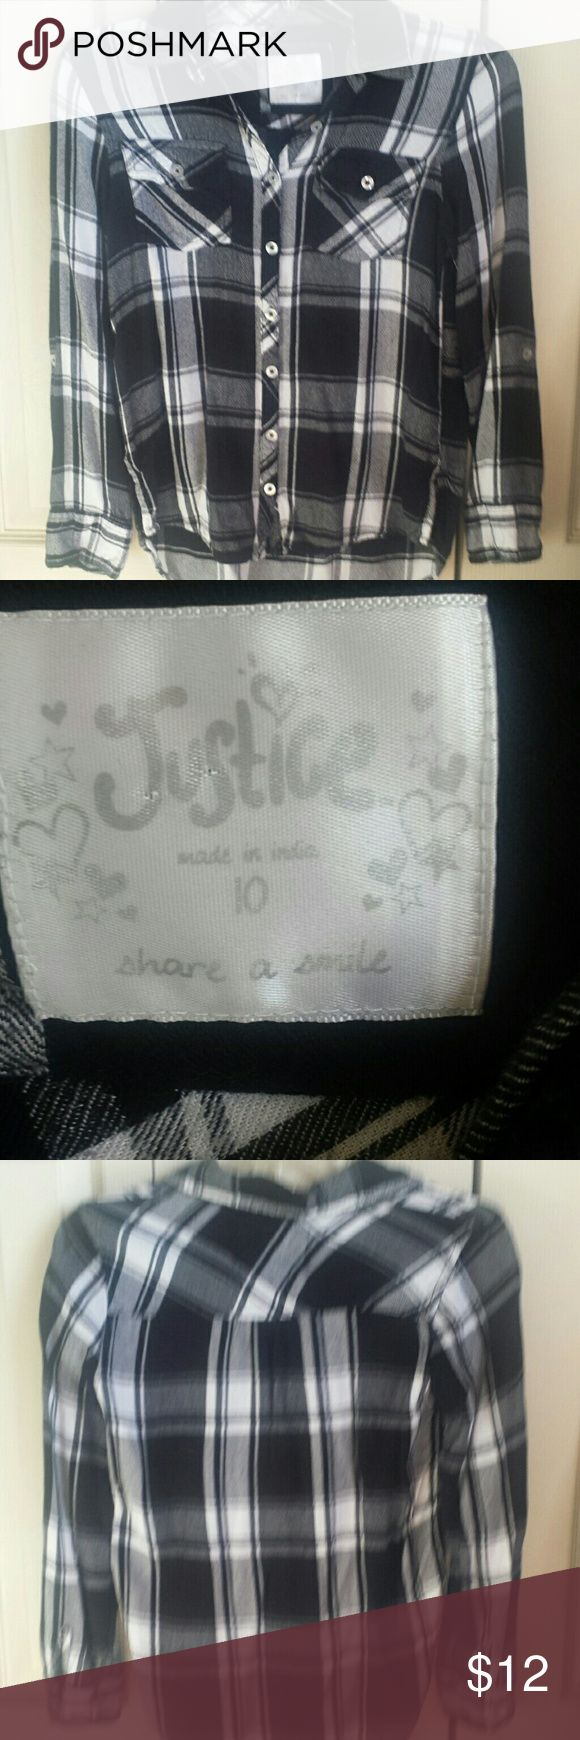 Justice shirt Just the style! Very nice, hardly worn black and white soft shirt from Justice Justice Shirts & Tops Blouses